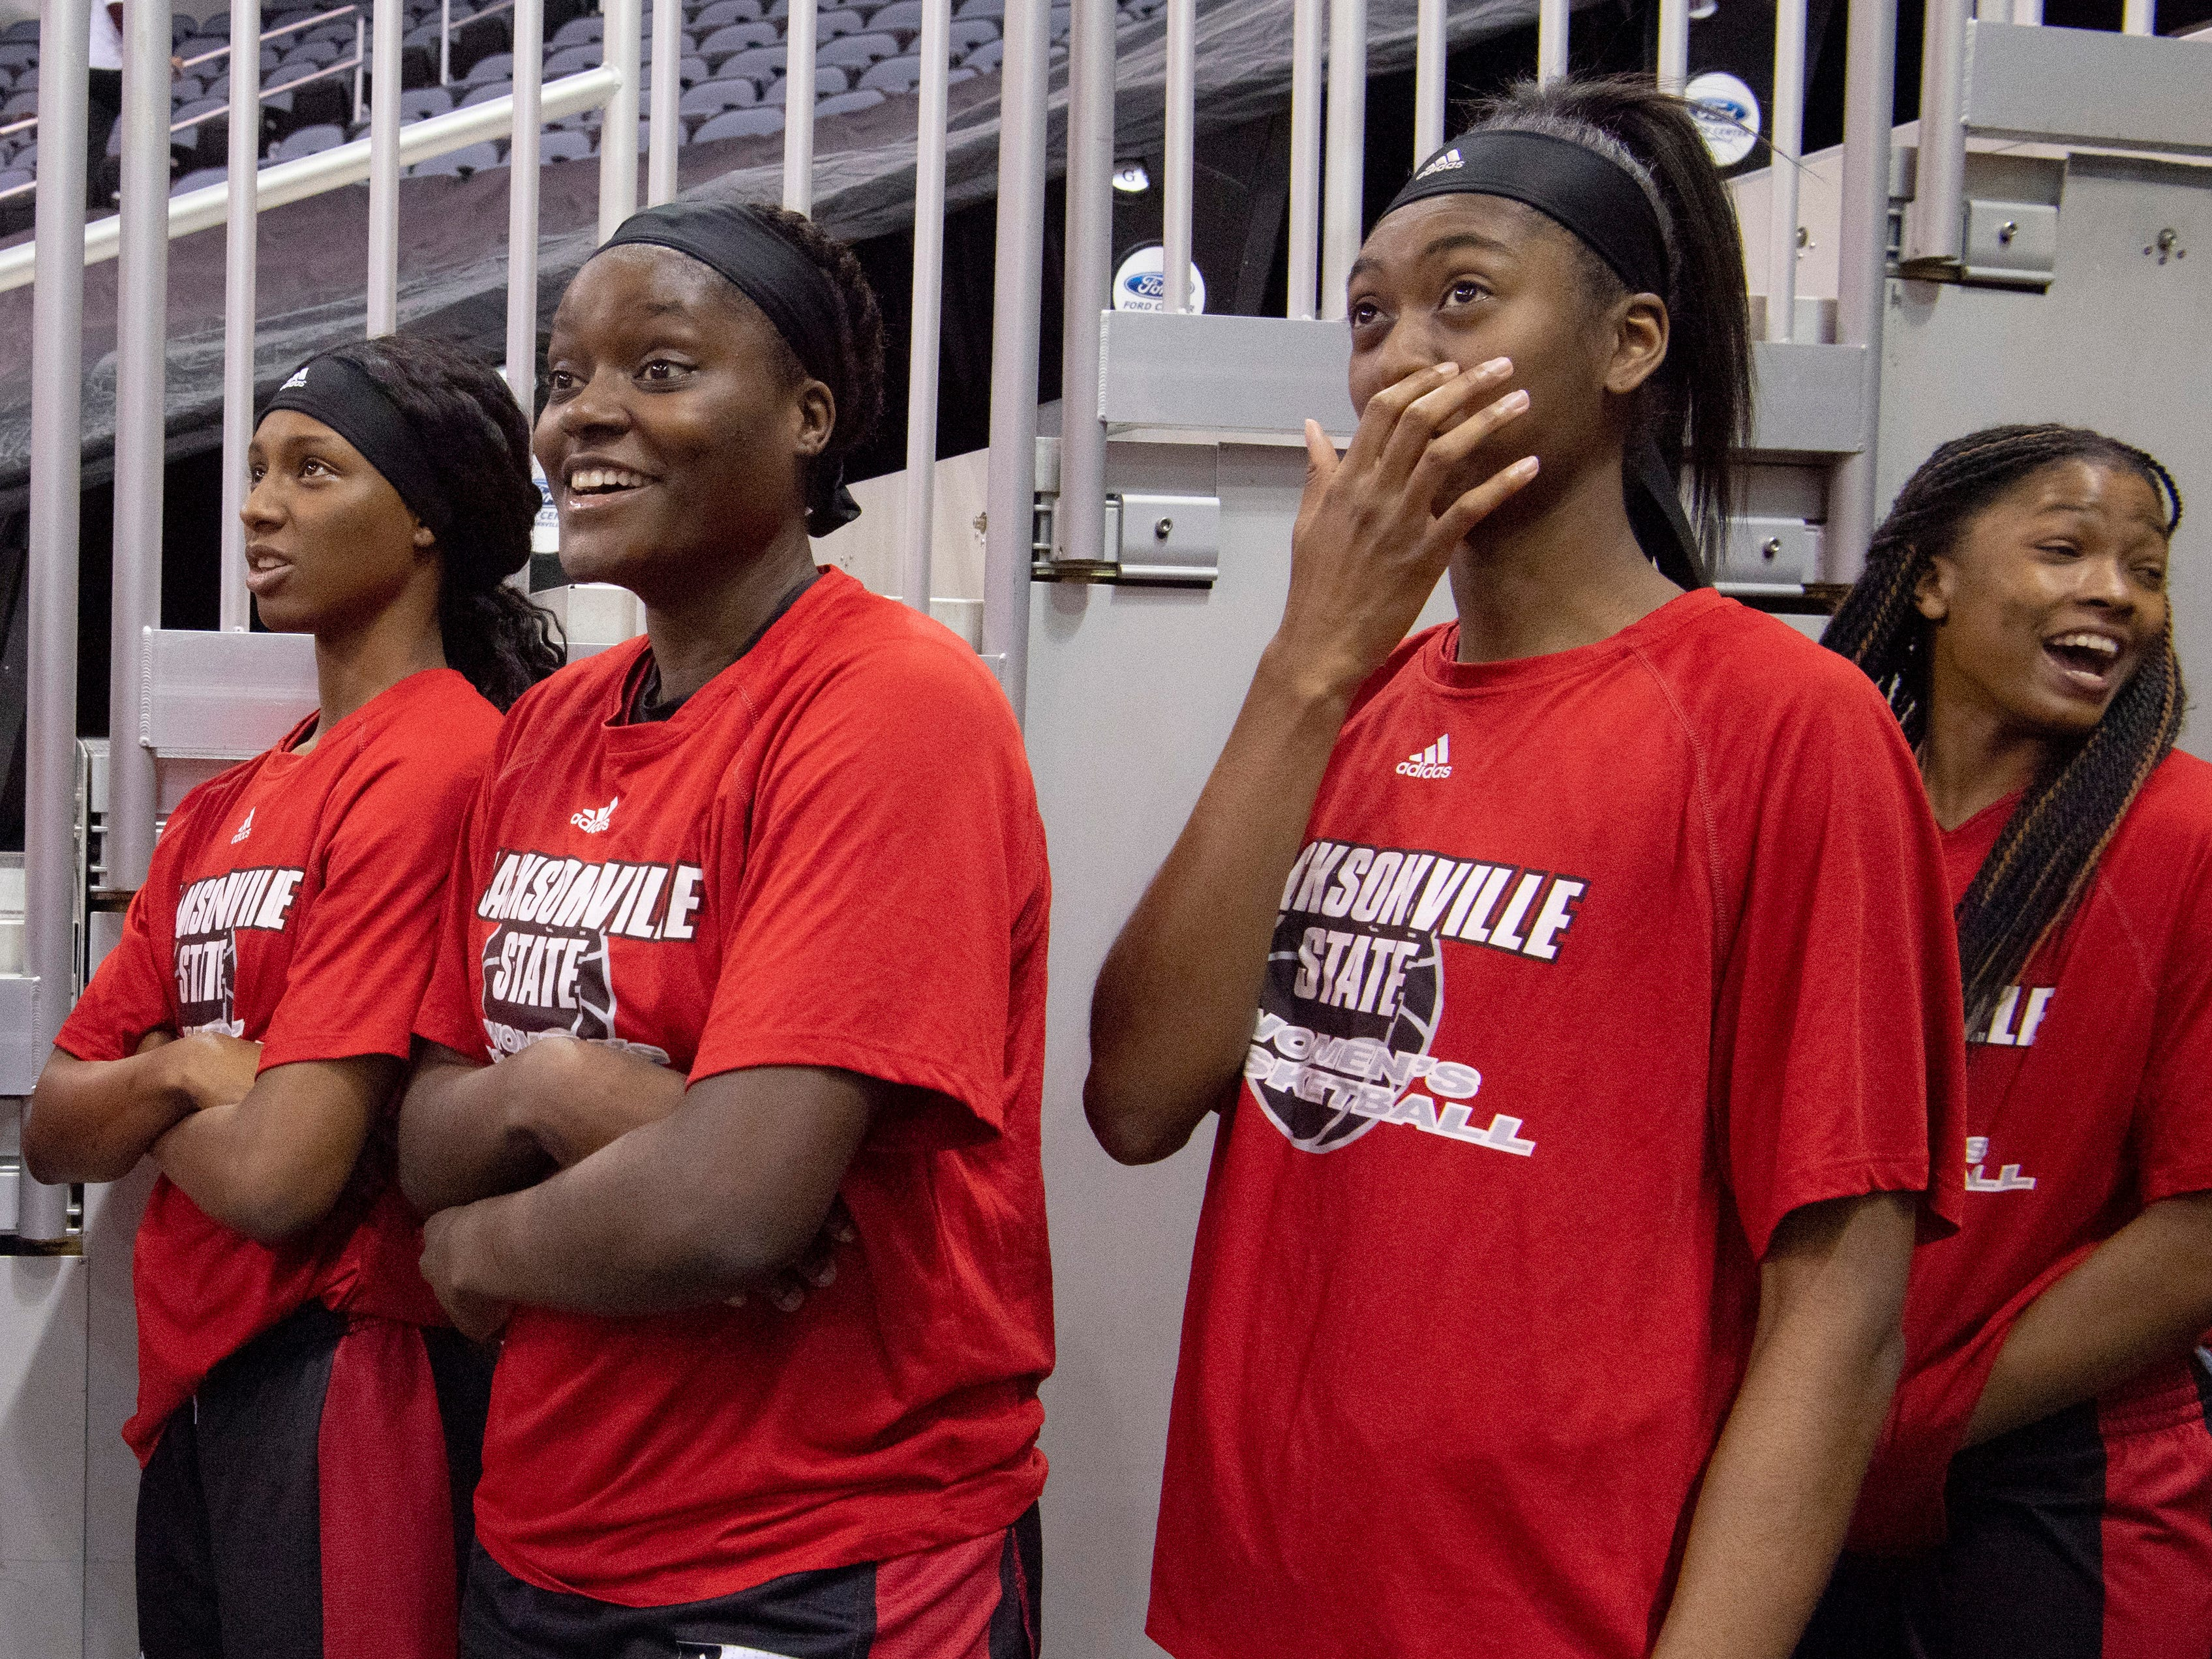 Jacksonville State's team watches an attempted comeback by Southeast Missouri against #1 Belmont at the Ohio Valley Conference Basketball Championships at the Ford Center in Evansville, Ind., Wednesday afternoon.